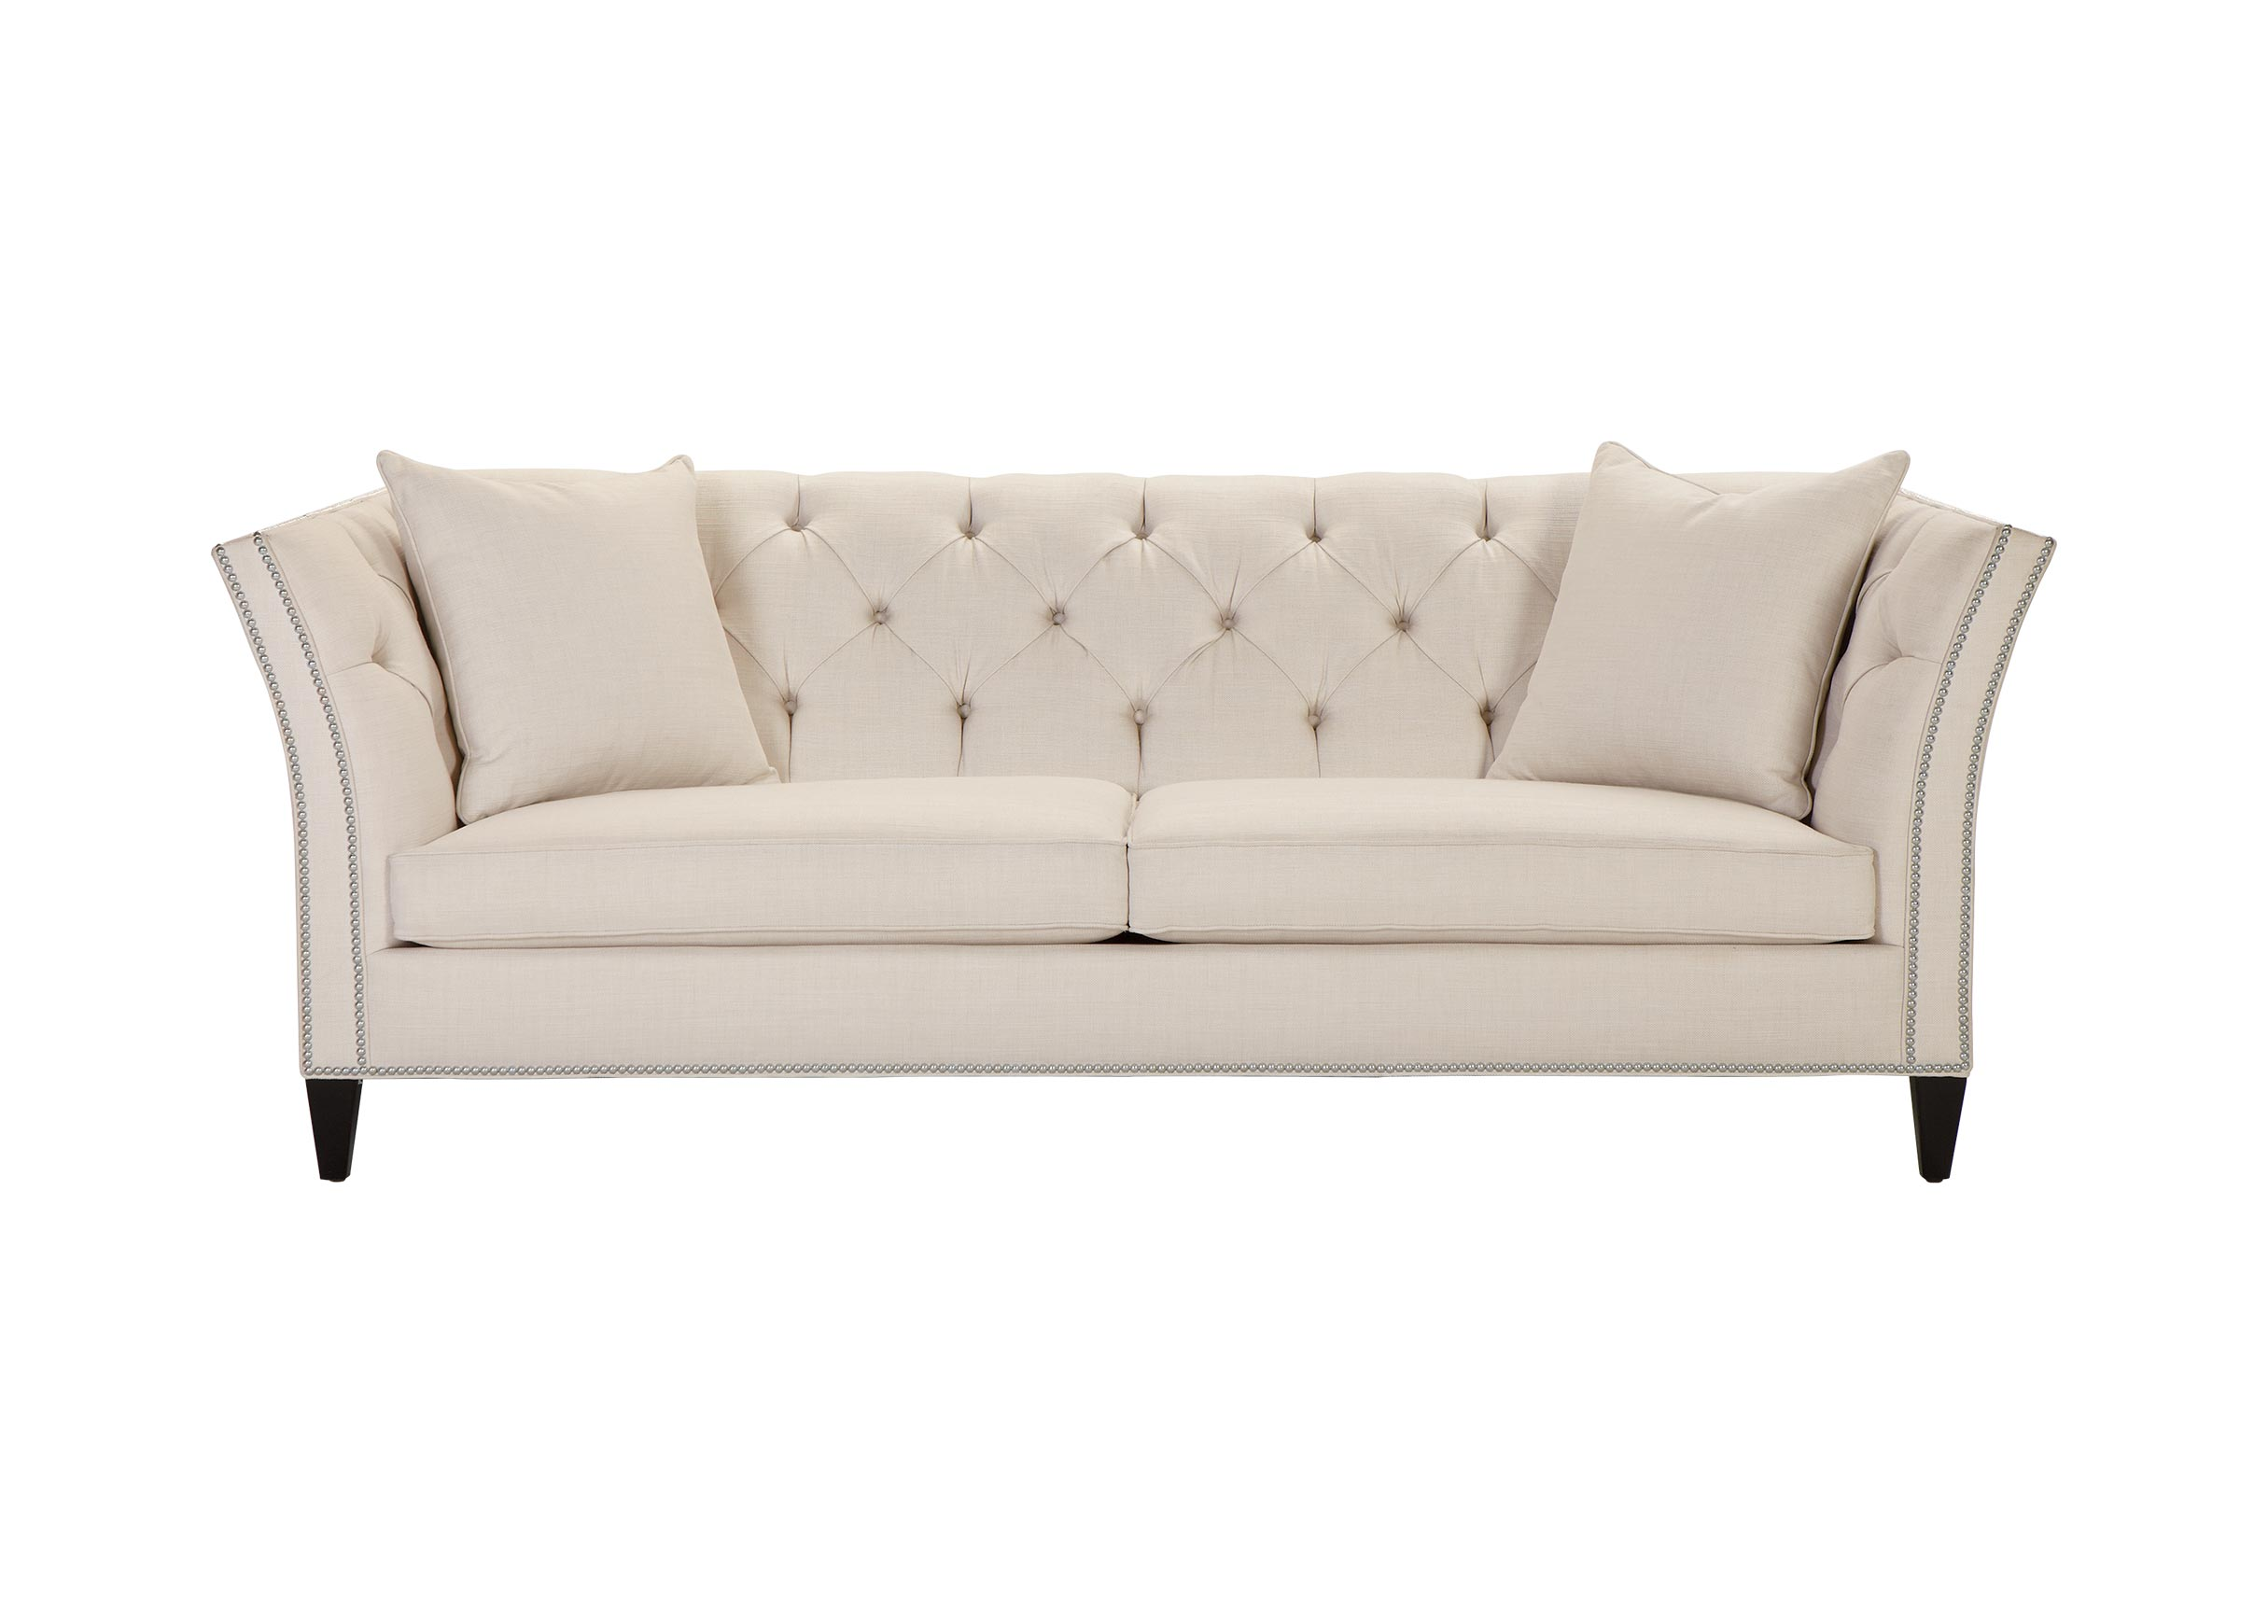 shelton sofa sofas loveseats ethan allen. Black Bedroom Furniture Sets. Home Design Ideas